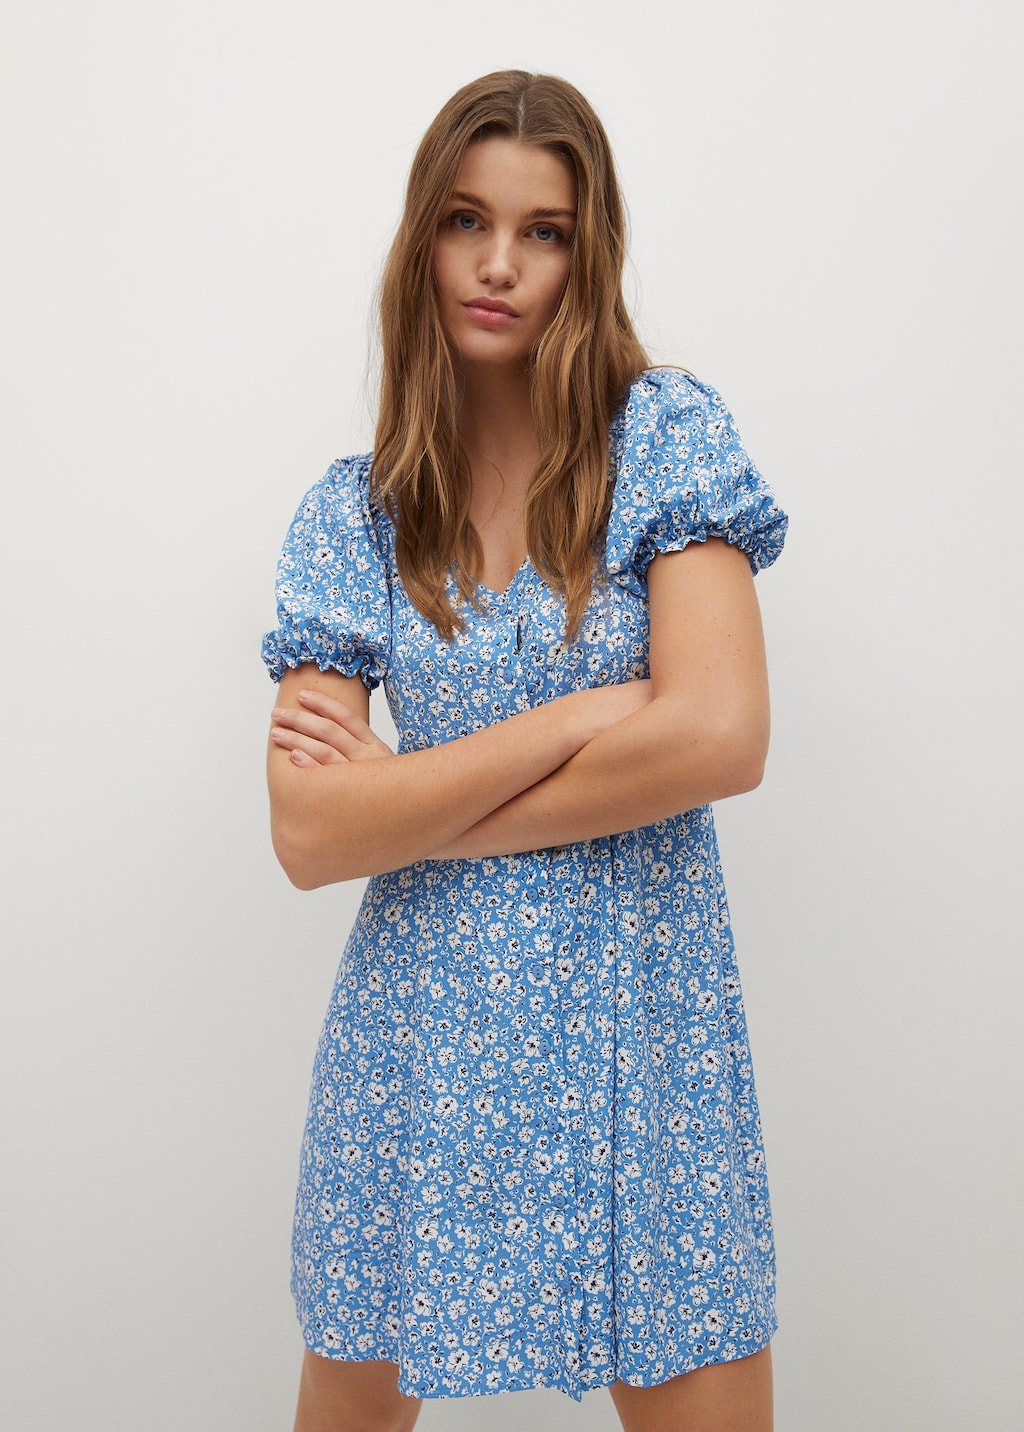 Weekly Finds (Including a Few Chic Spring Upgrades)